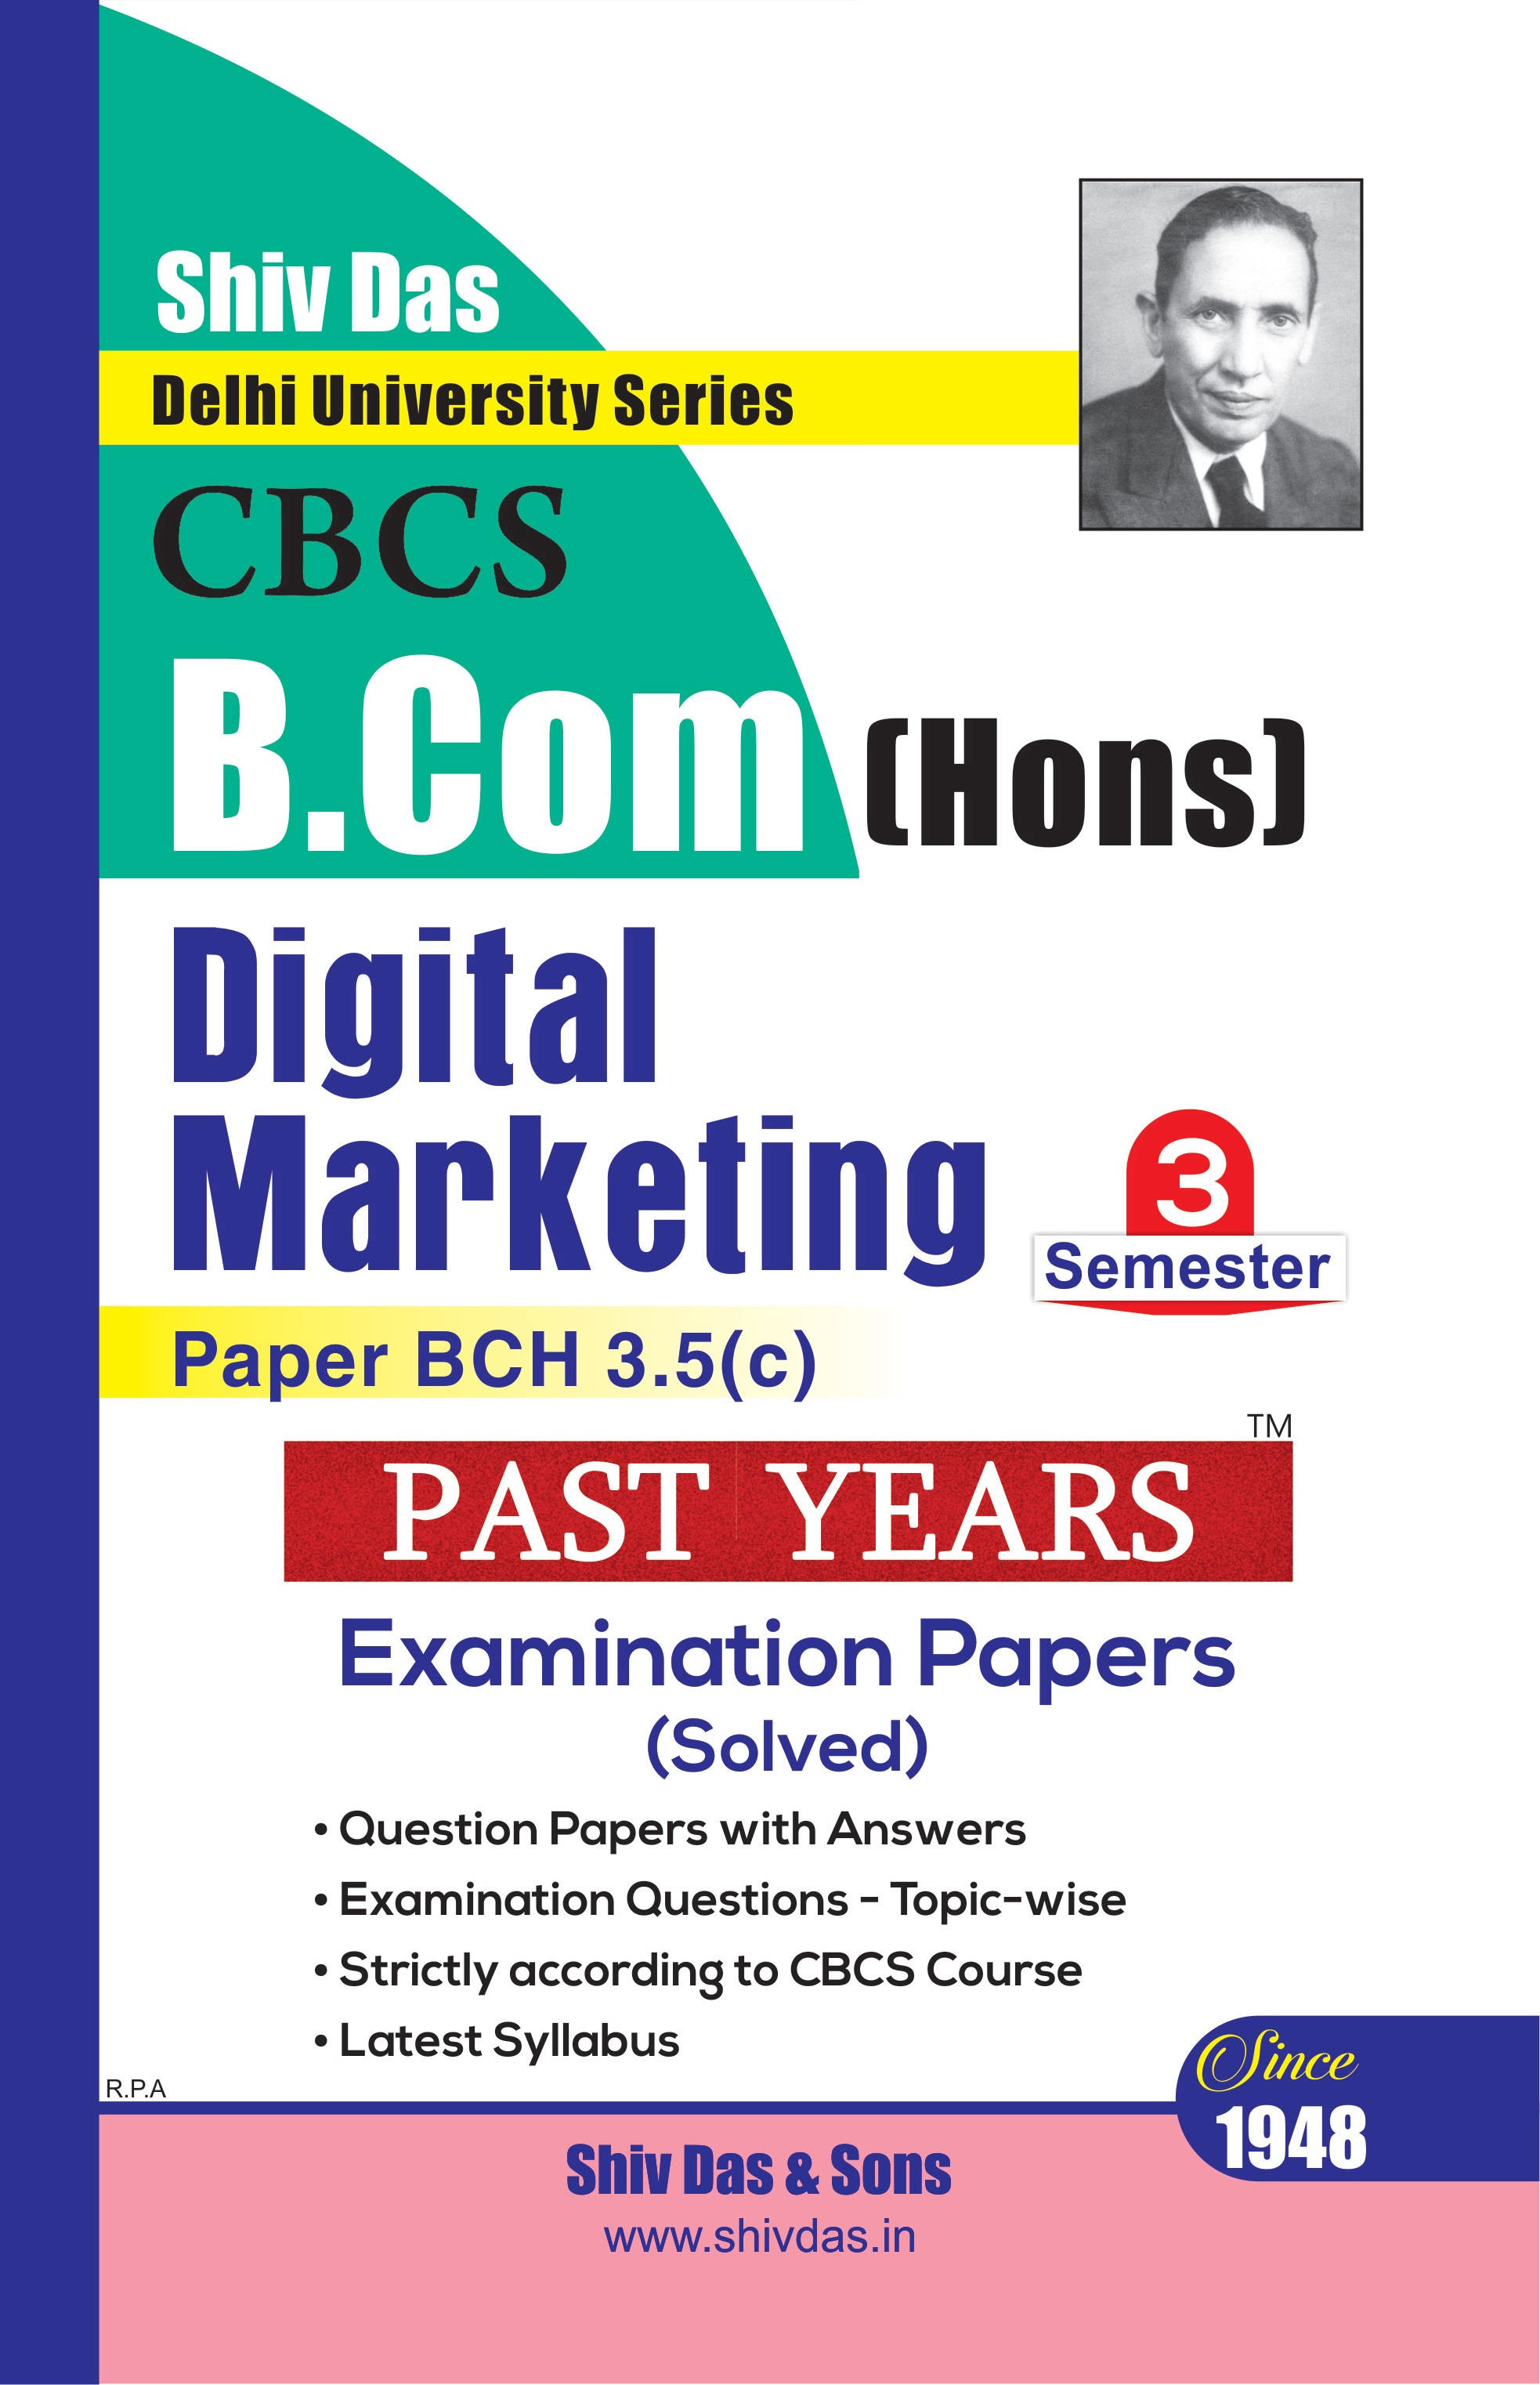 Digital Marketing for B.Com Hons Semester 3 for Delhi University by Shiv Das